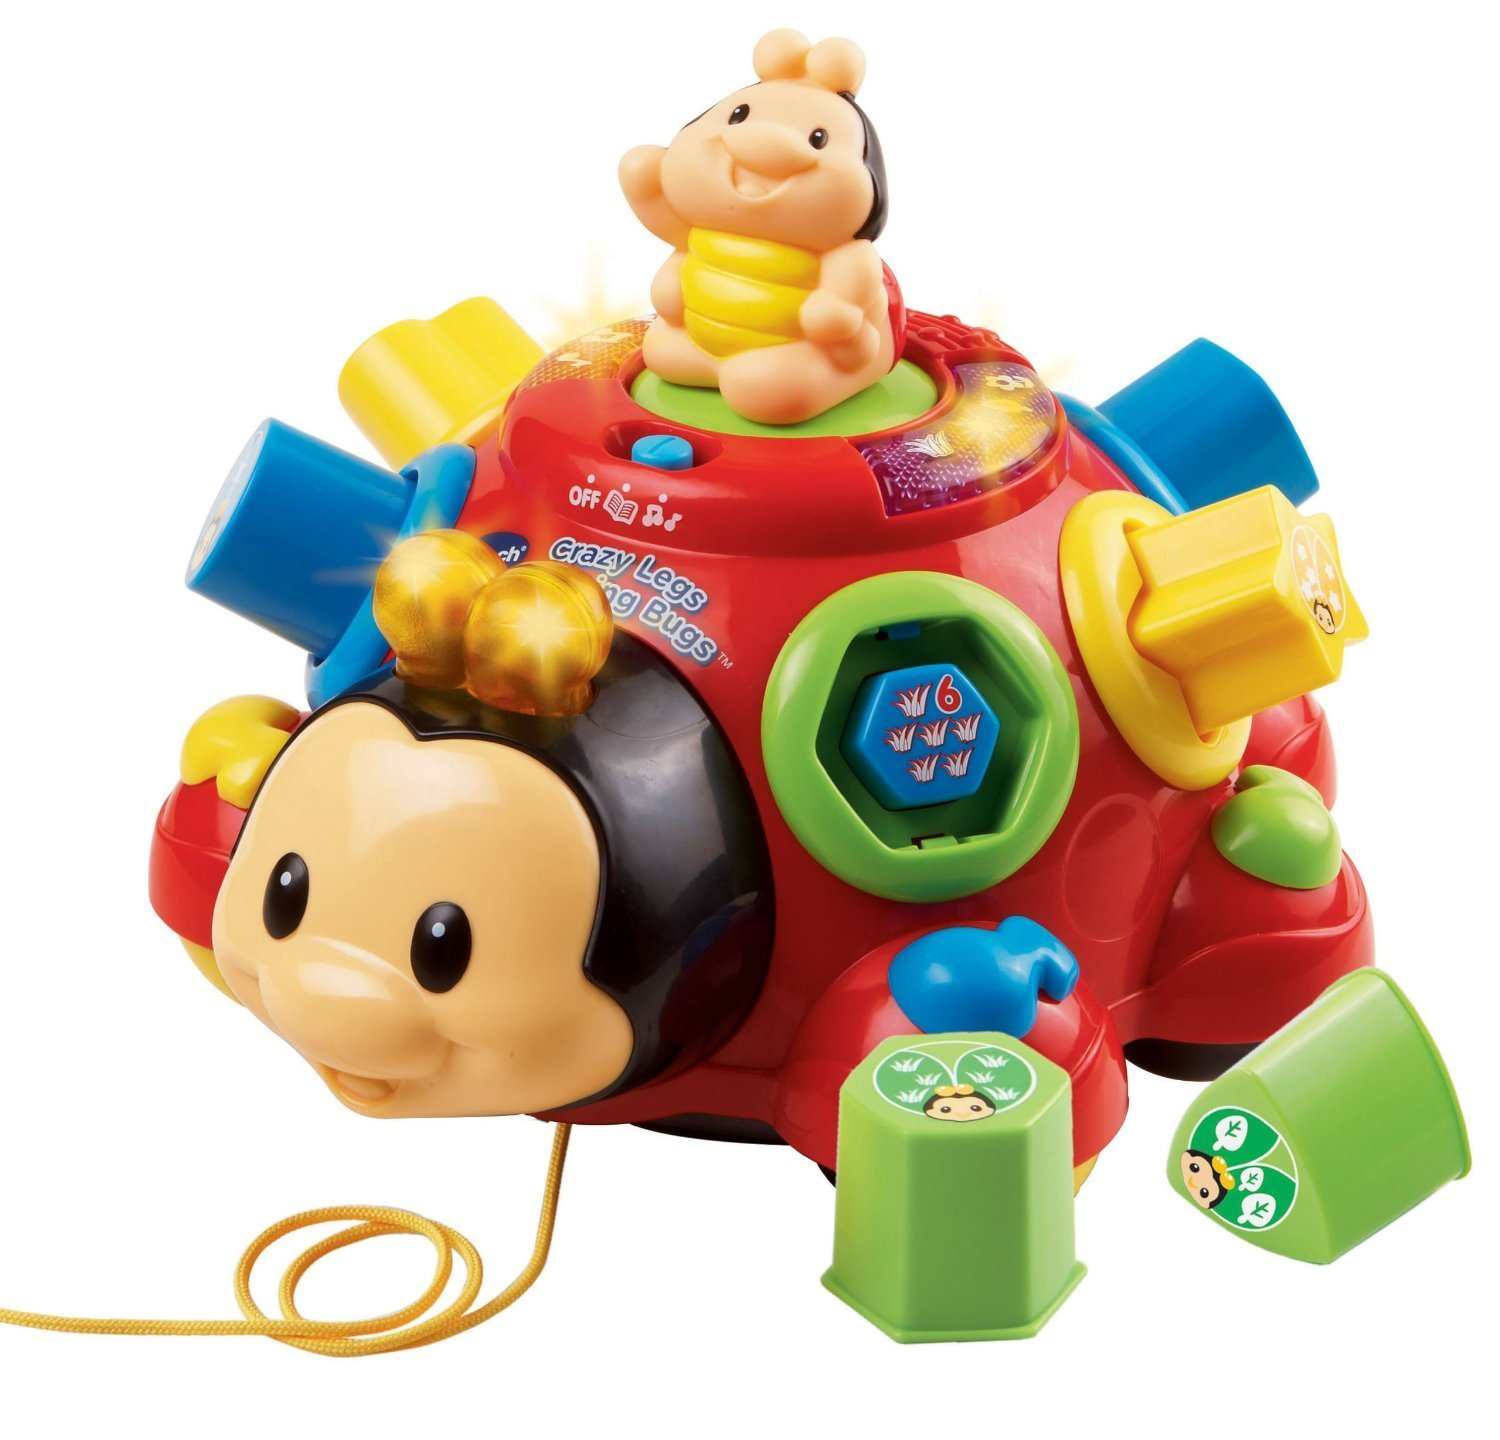 Early Education Toy Crazy Legs Learning Bugs Music Toy for Kids, Ships from United States.... by